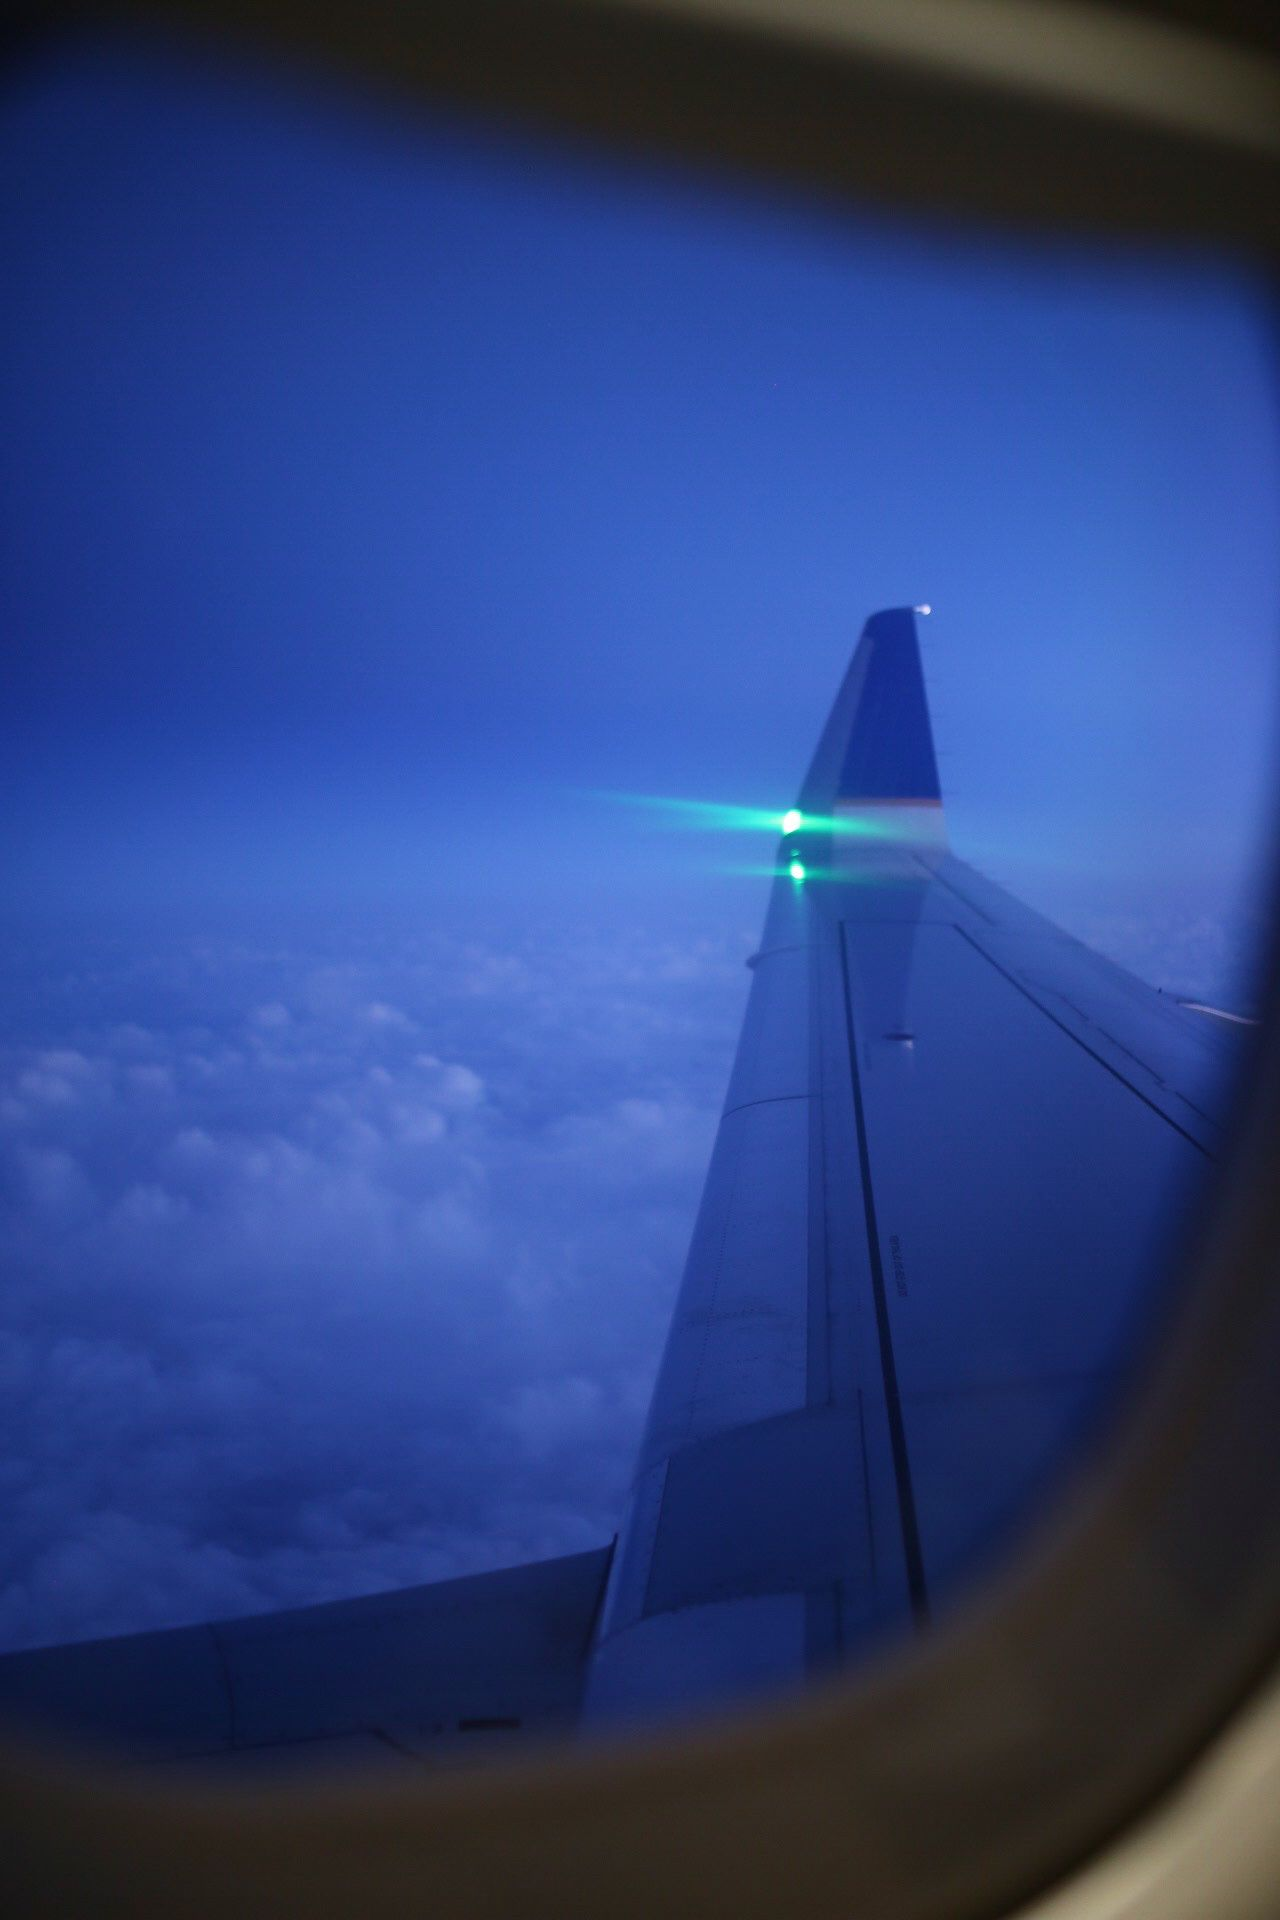 Night Time Shot From The Window Seat With Rich Blue Skies